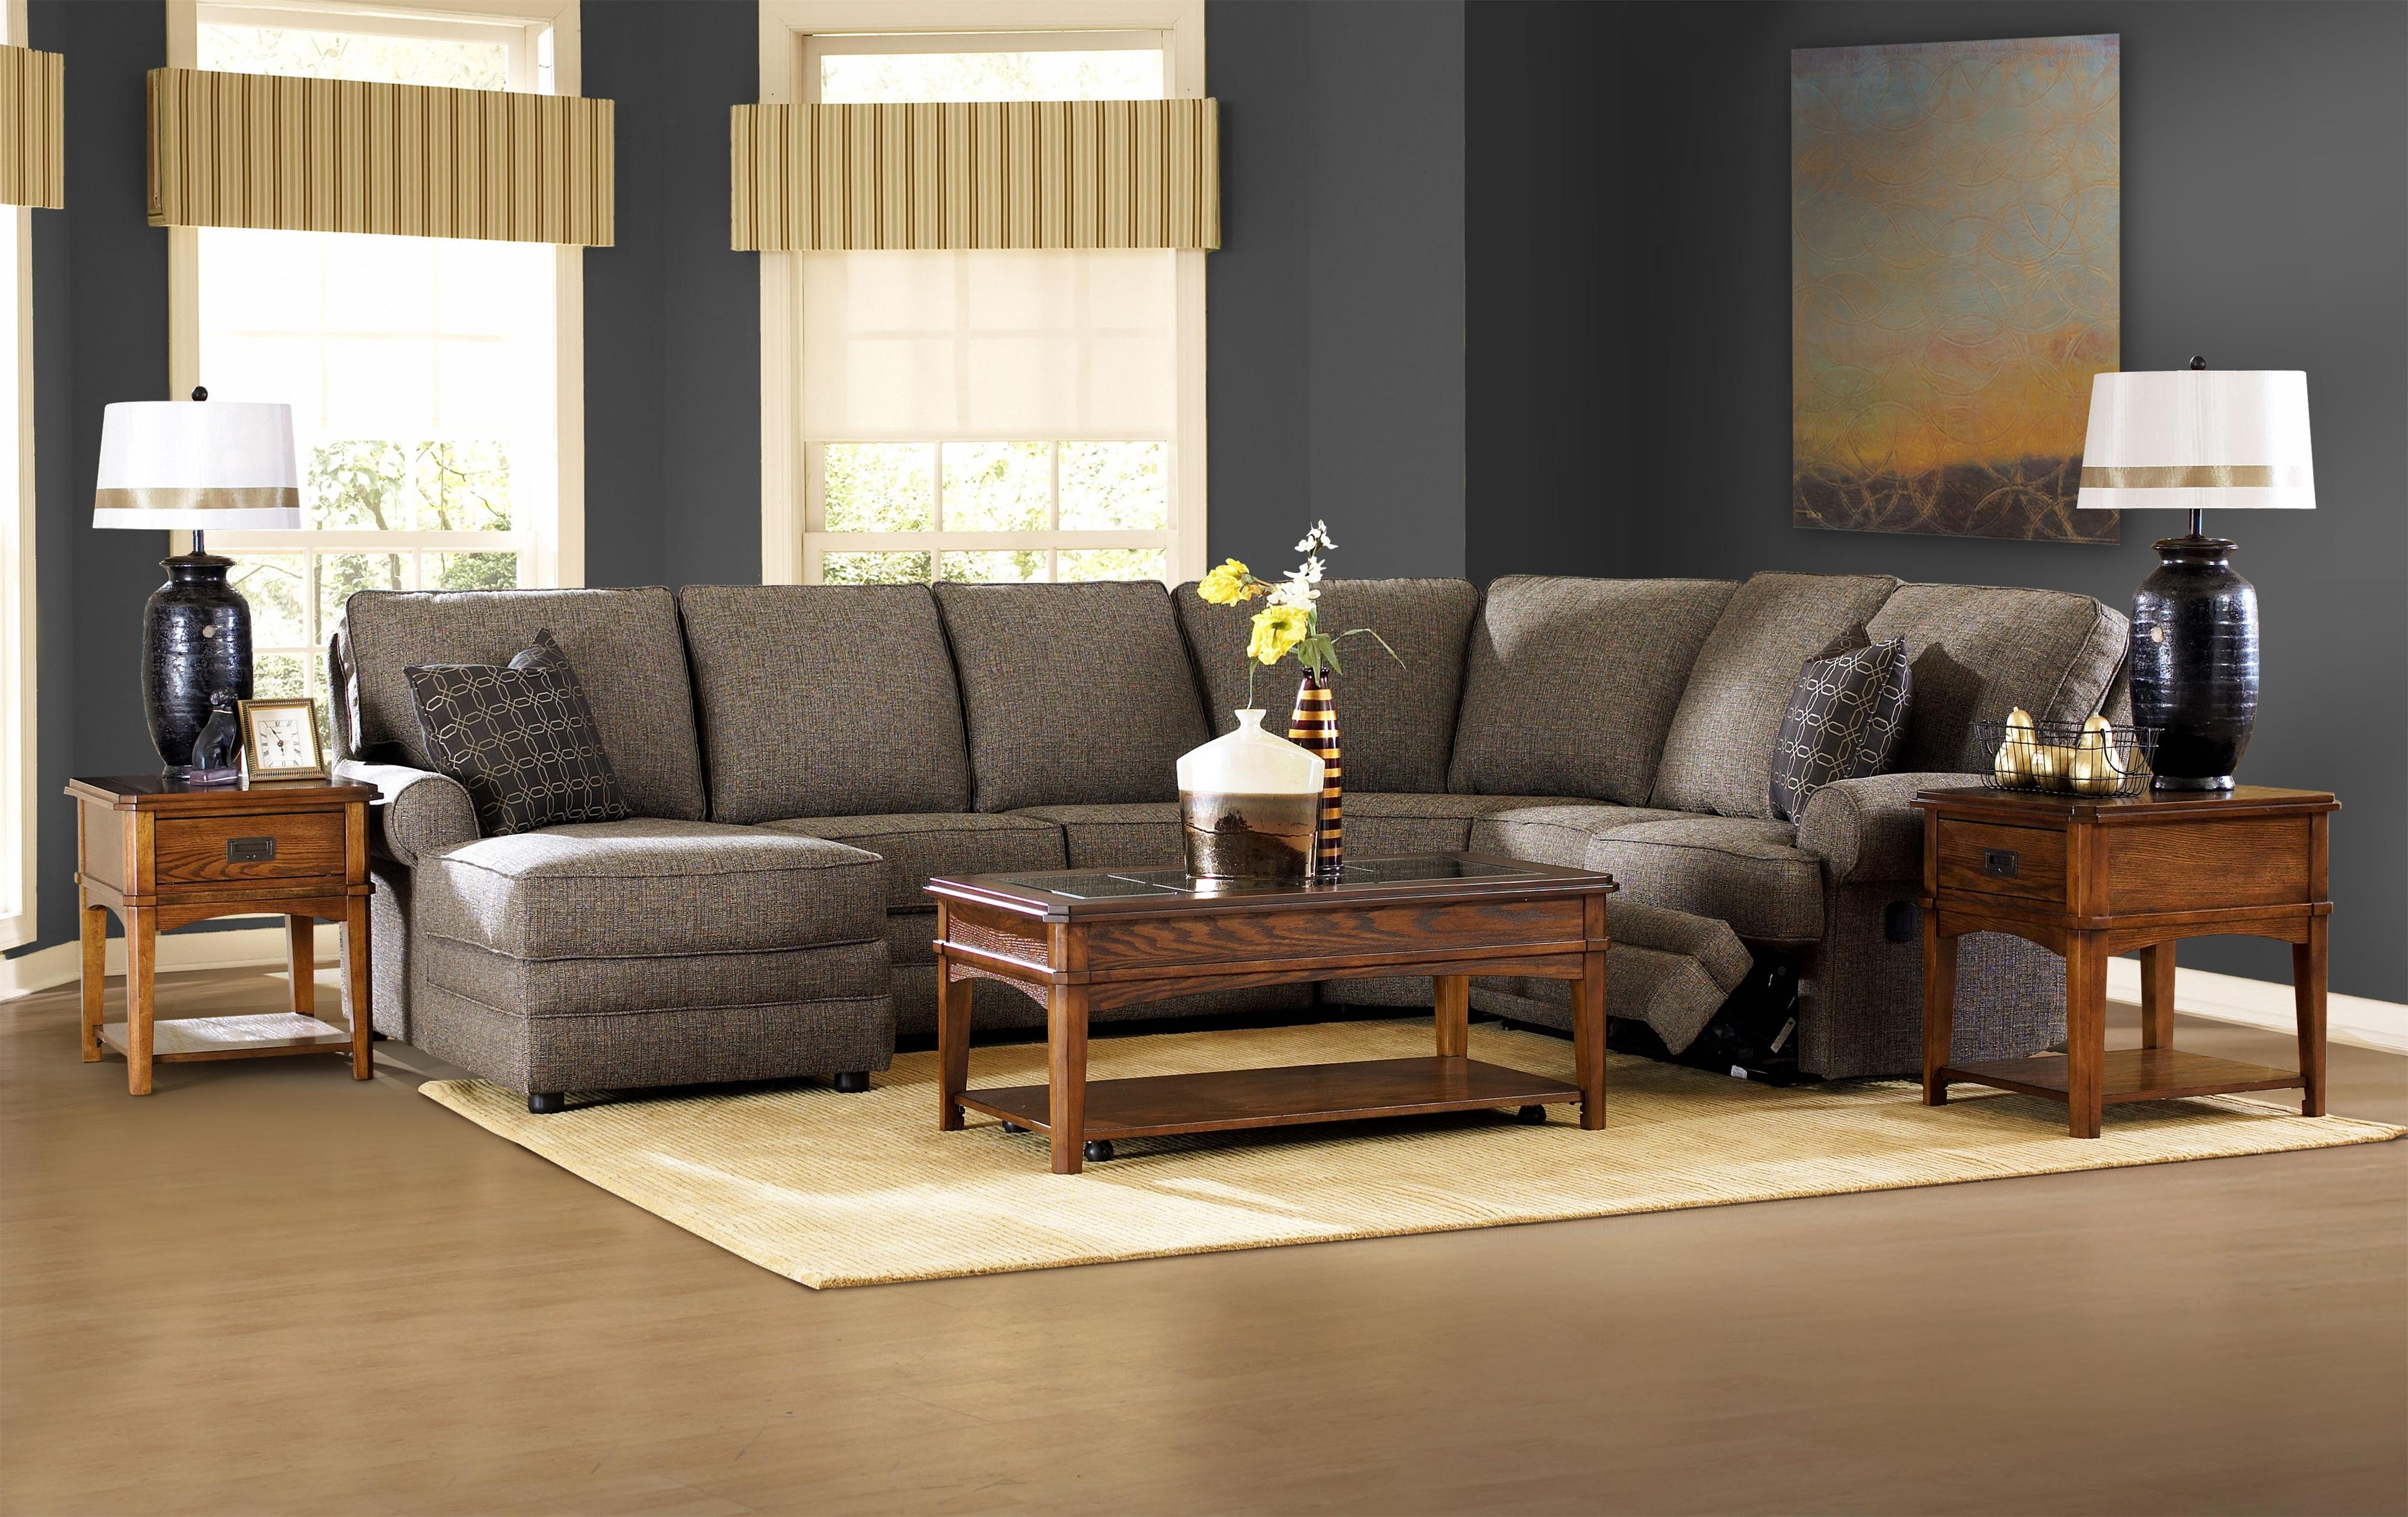 Current Ergonomic Sectional With Chaise And Recliner For Living Room Intended For Sectionals With Chaise And Recliner (View 2 of 15)